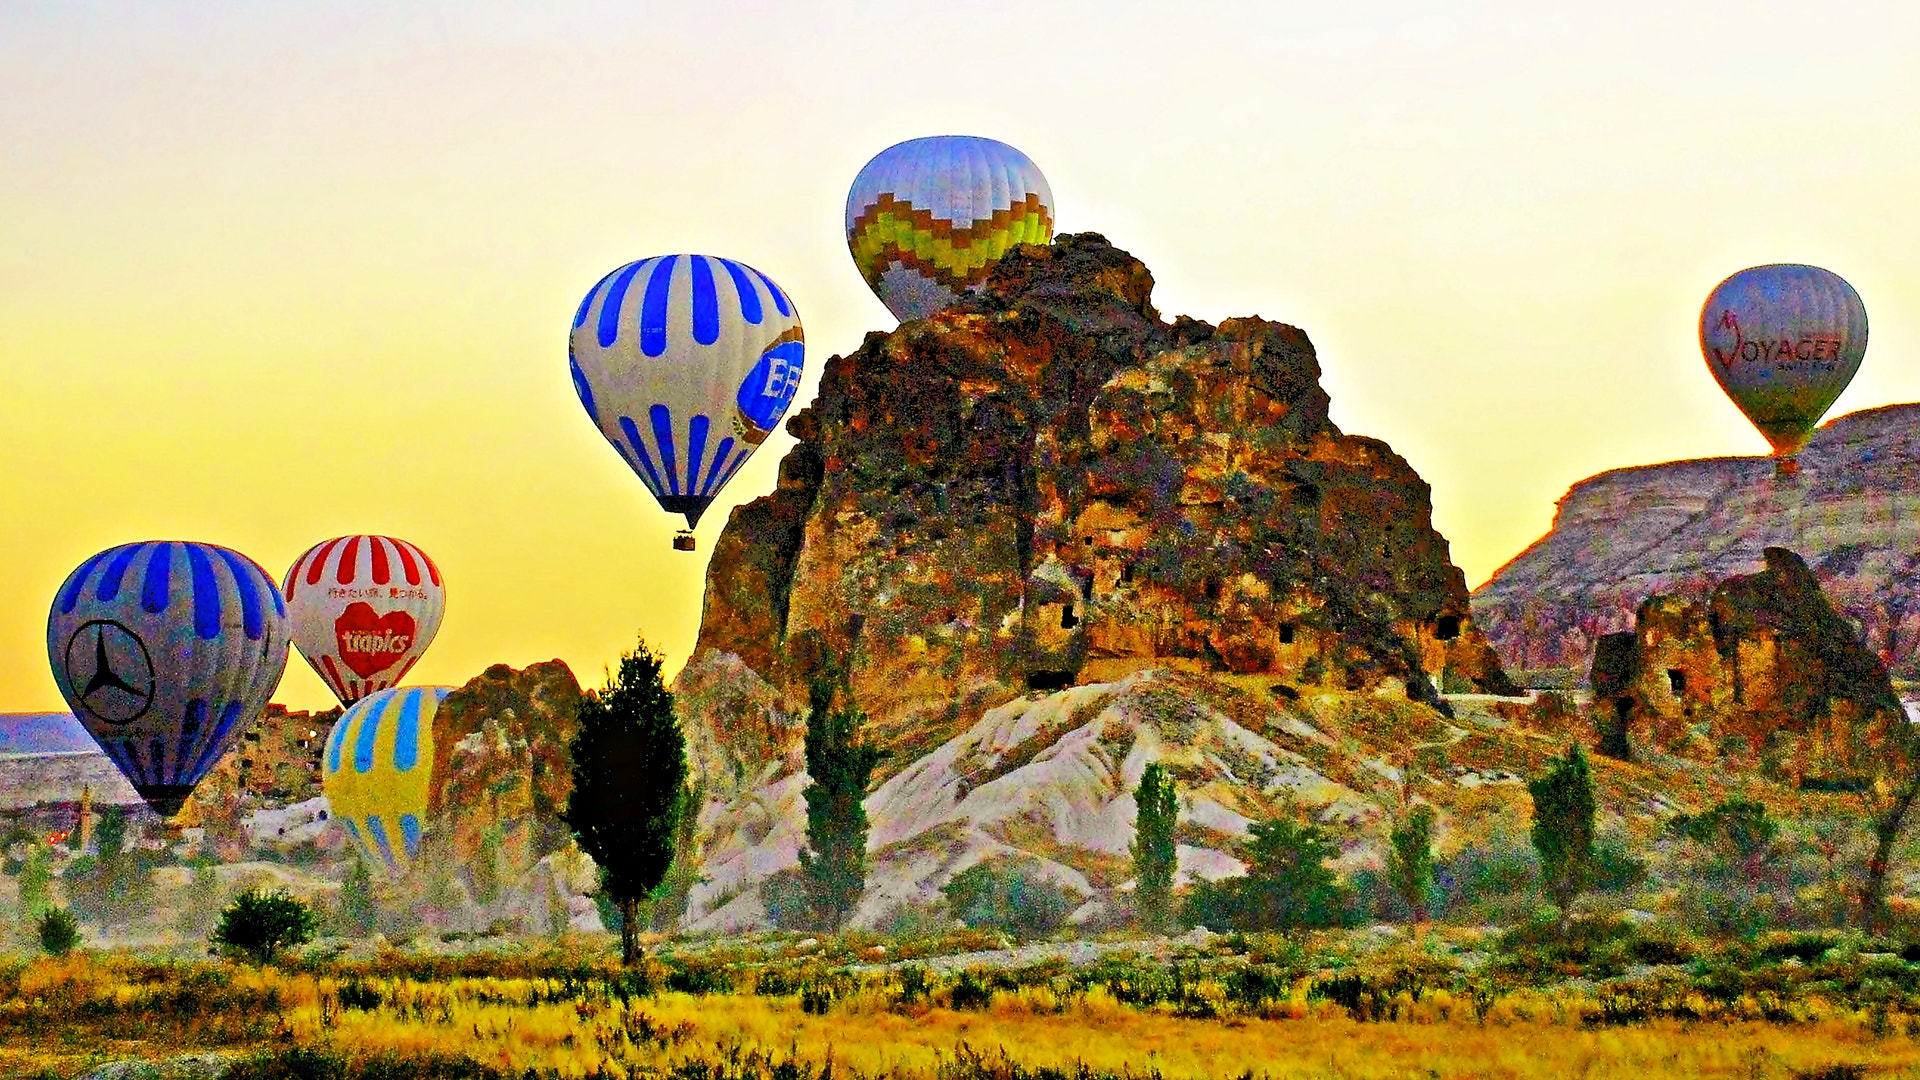 Photograph Cappadocia with Balons by ilker kursun on 500px